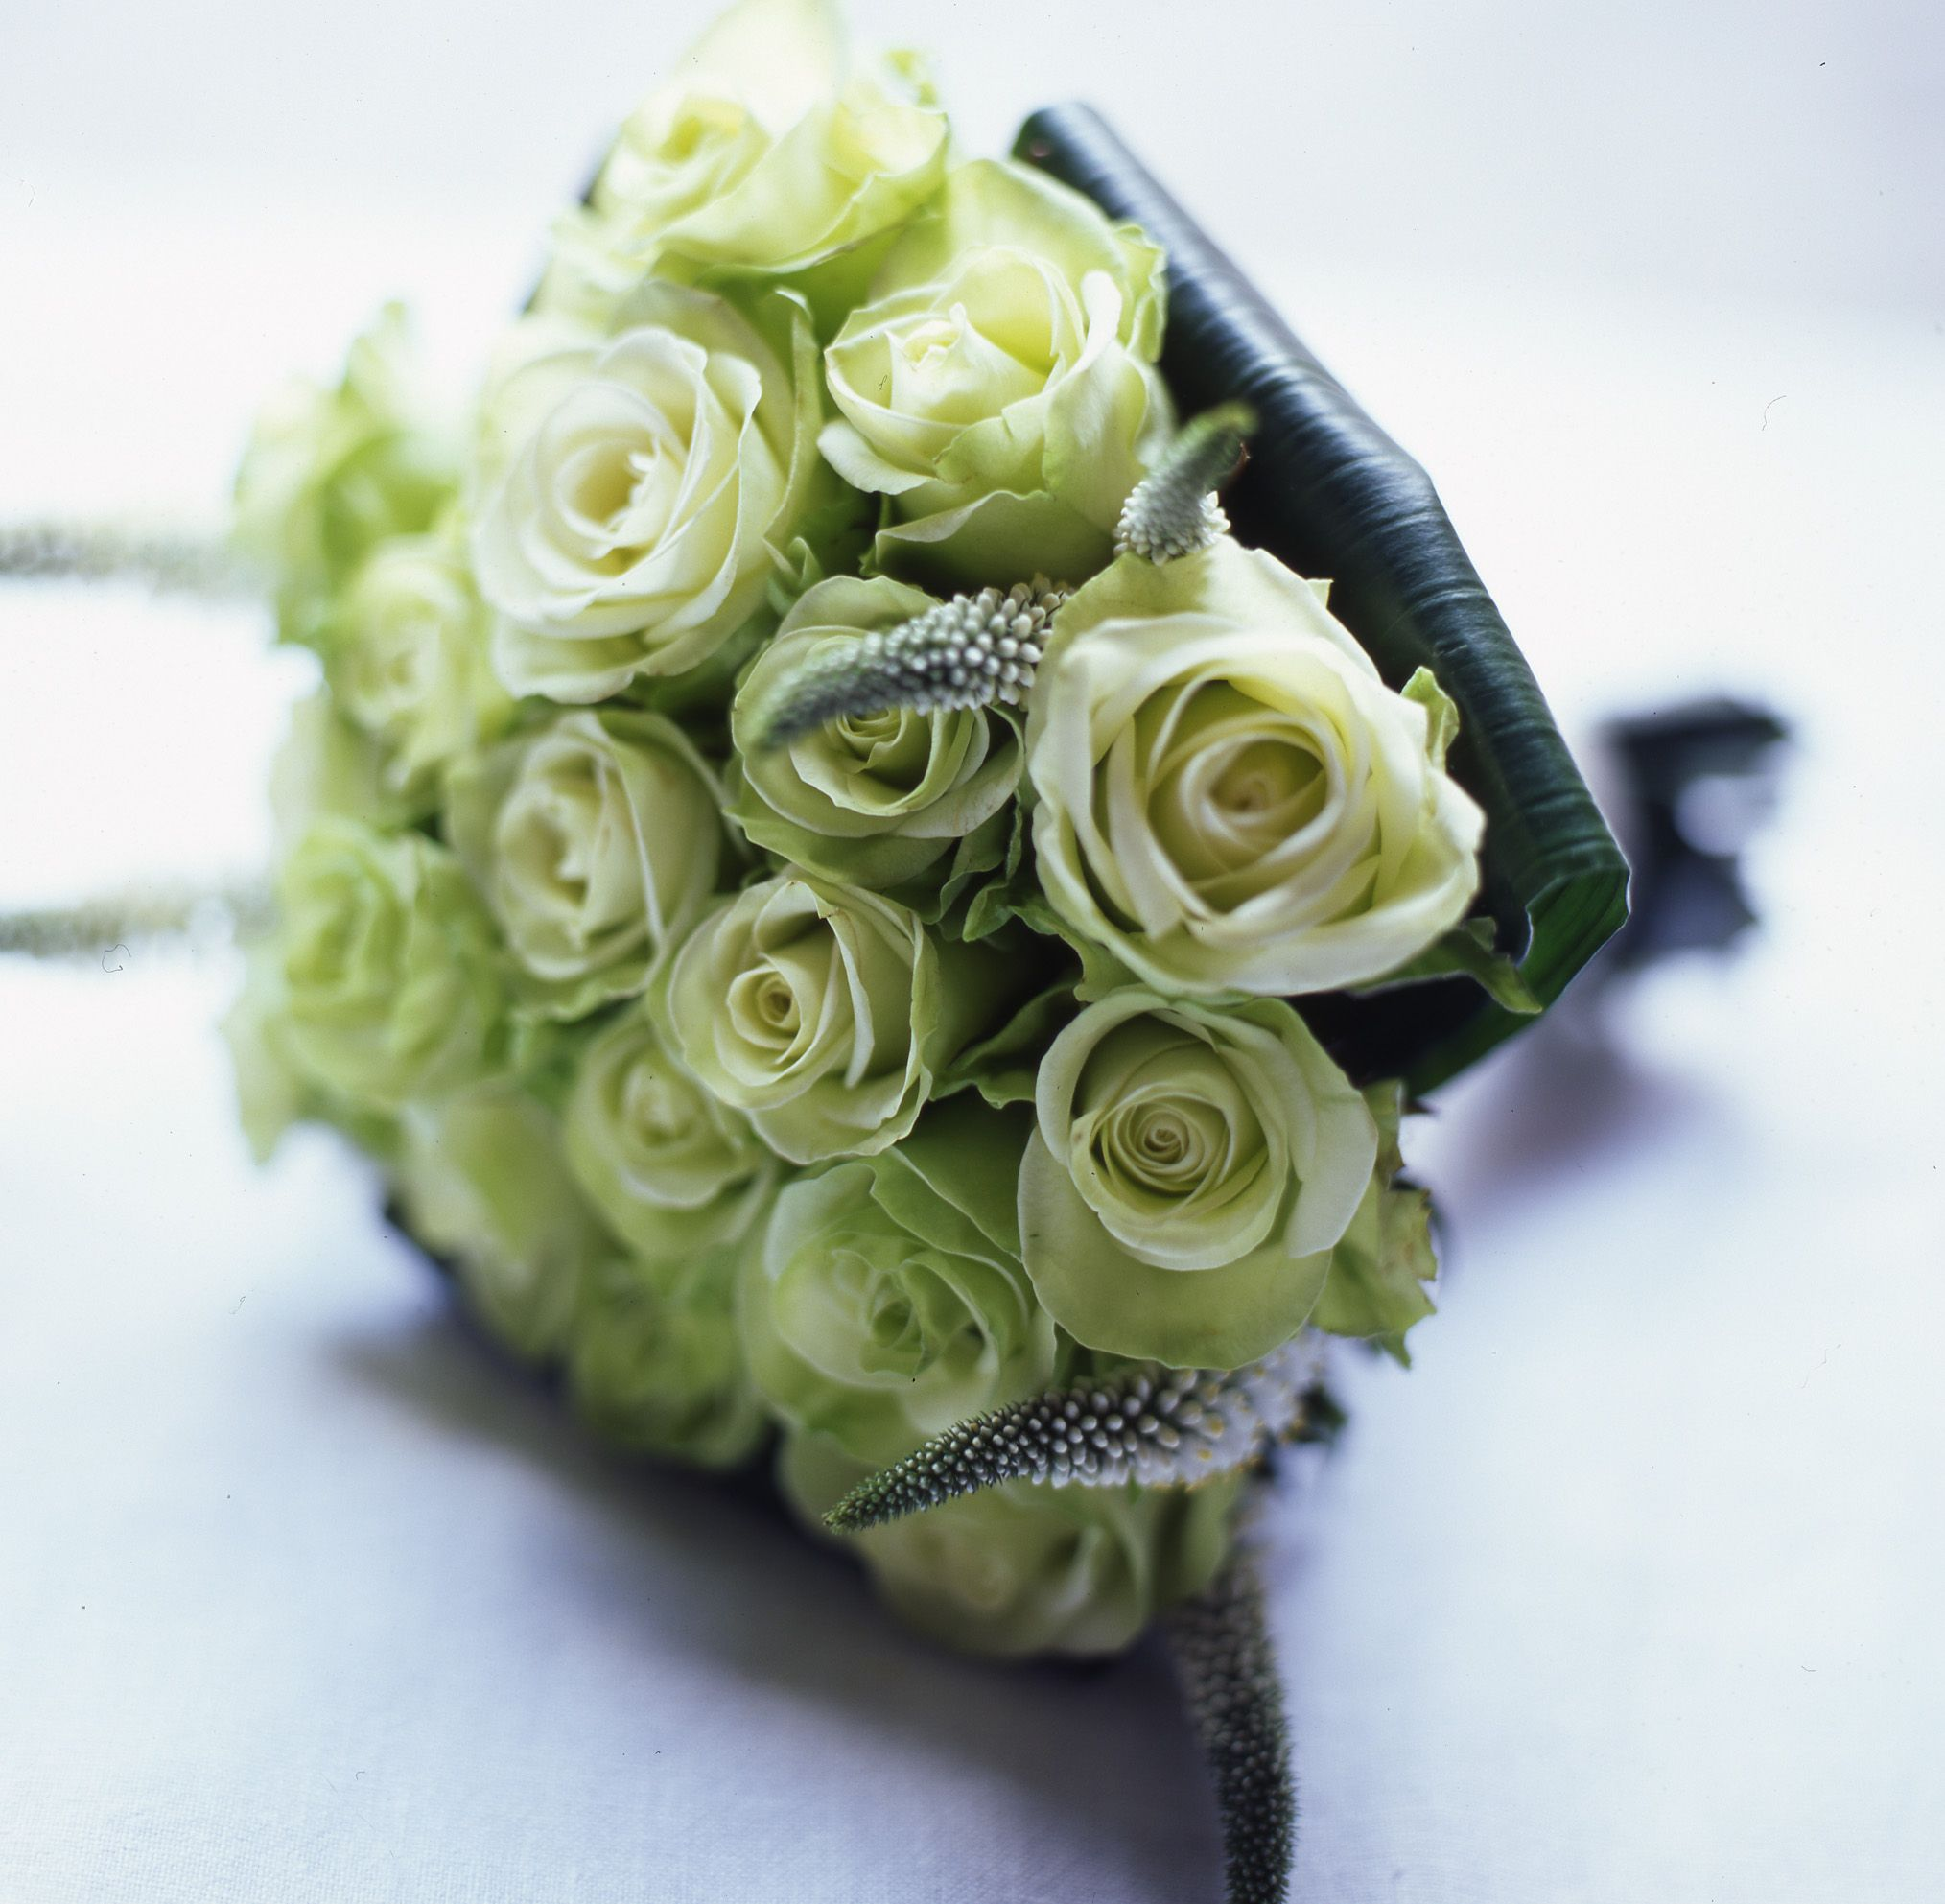 Vanillarose Co Uk Hand Tied Bouquet Of F Green Roses With Folded Aspidistra Leaves Gorgeous Wedding Bouquet Hand Tied Bouquet Green Rose